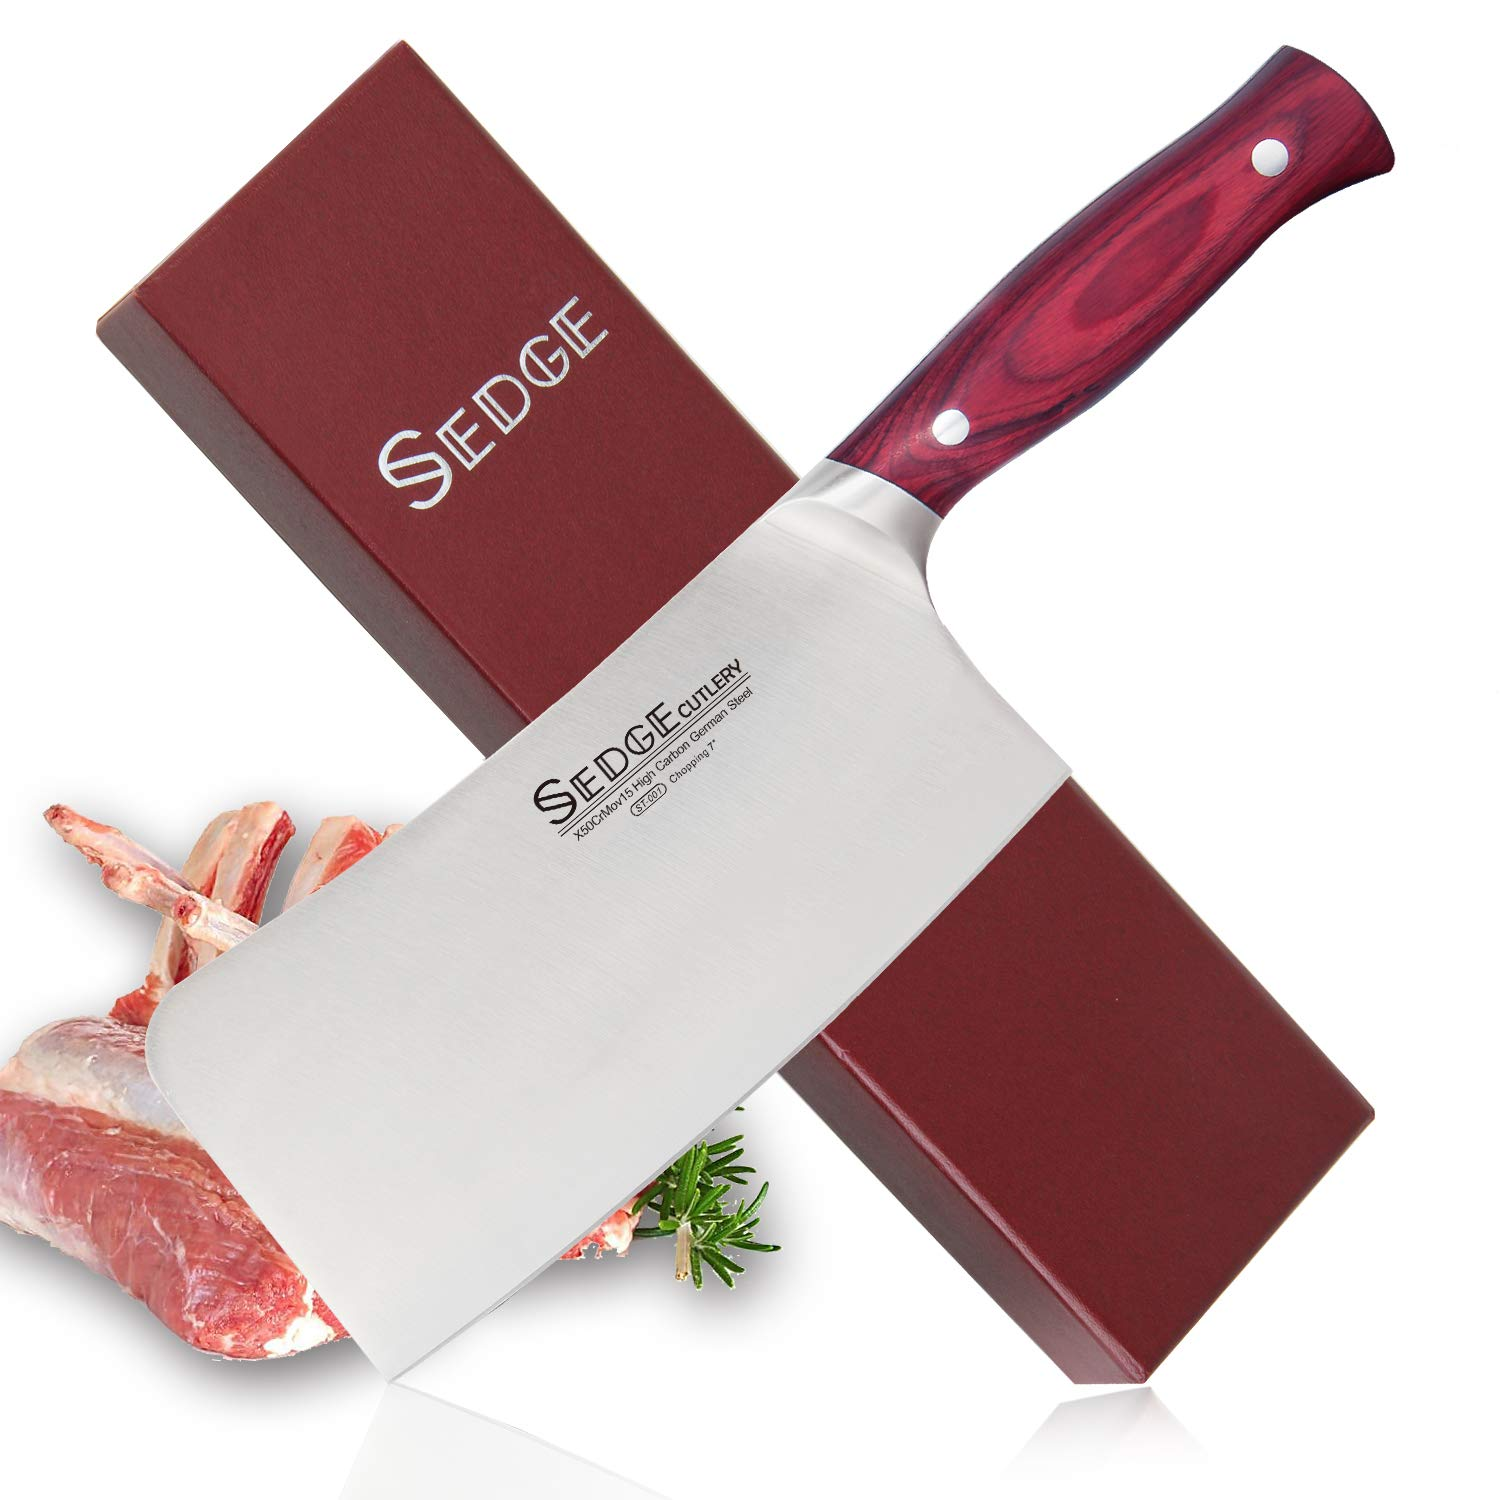 Sedge Chopping Knife 7 Inch Kitchen Heavy Duty Butcher Restaurant Cooking High Carbon German Stainless Steel with Ergonomic Pakkawood Handle Gift Boxed - ST Series